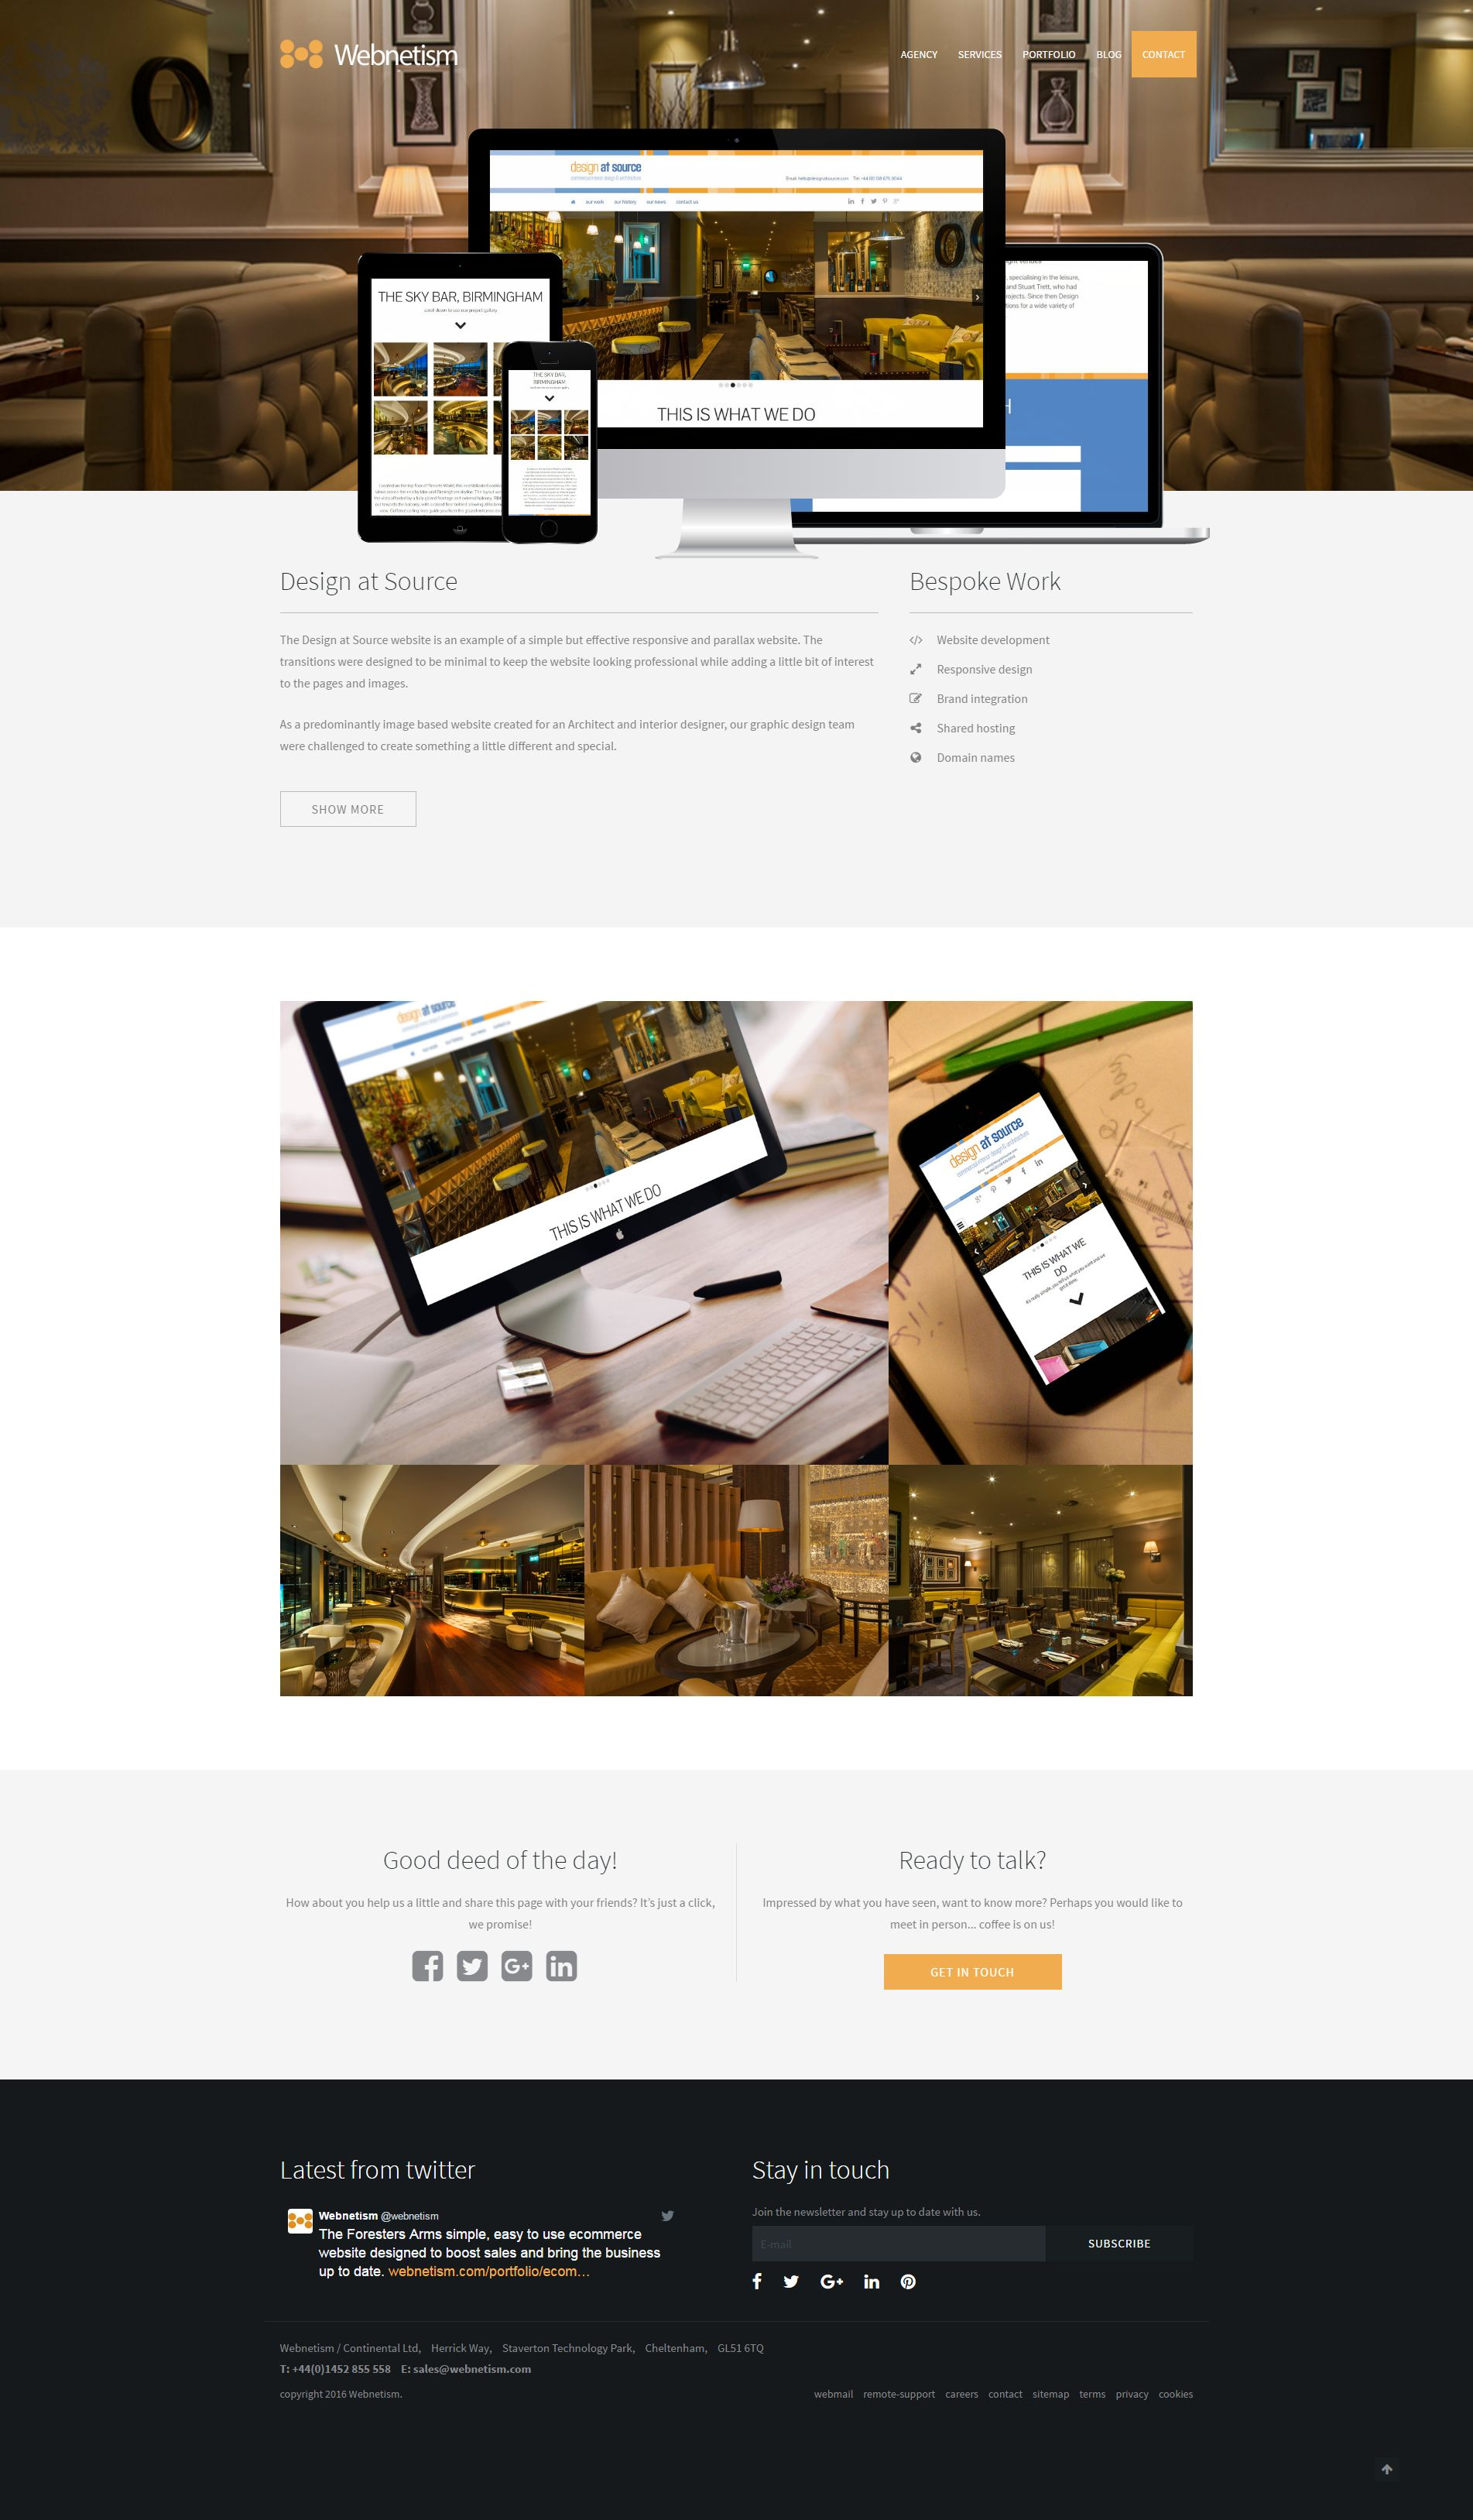 Design At Source Static Responsive Html5 Css3 Website Completed And Hosted By Webnetism Design Web Development Team In Che Design Html5 Css3 Web Design